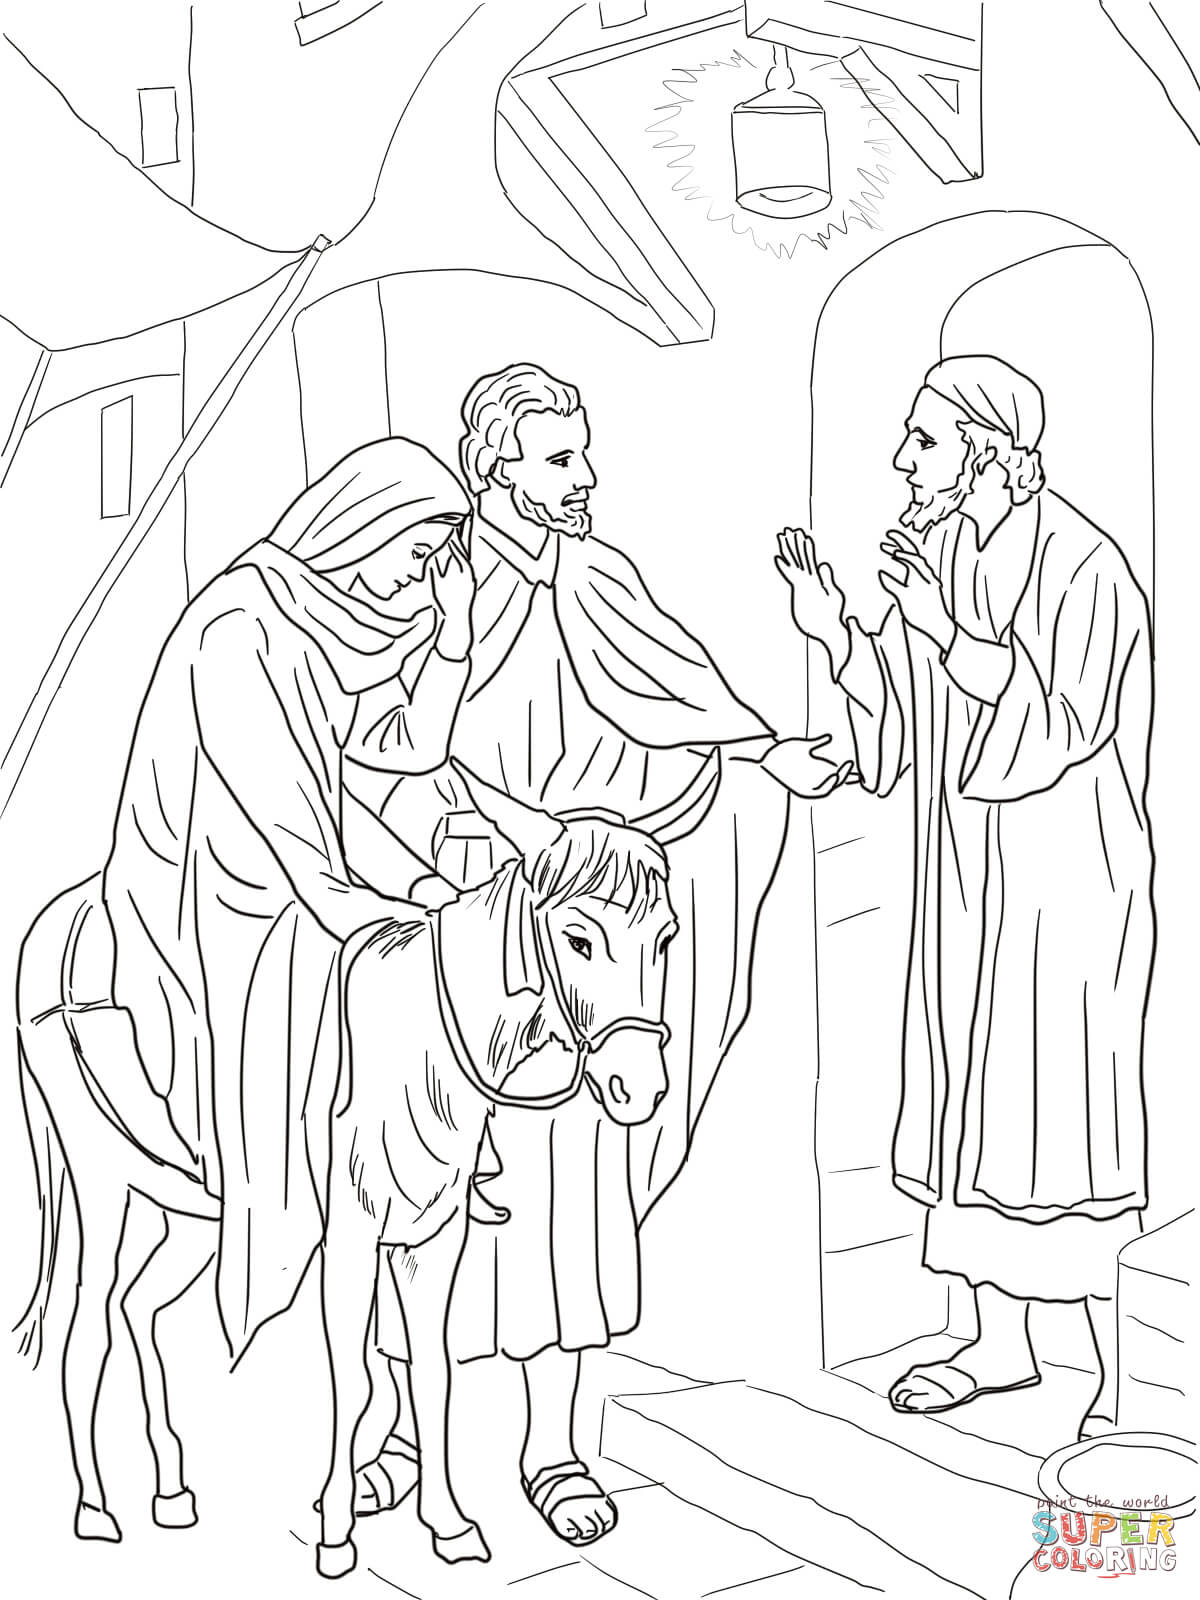 No Room at the Inn for Mary and Joseph coloring page.